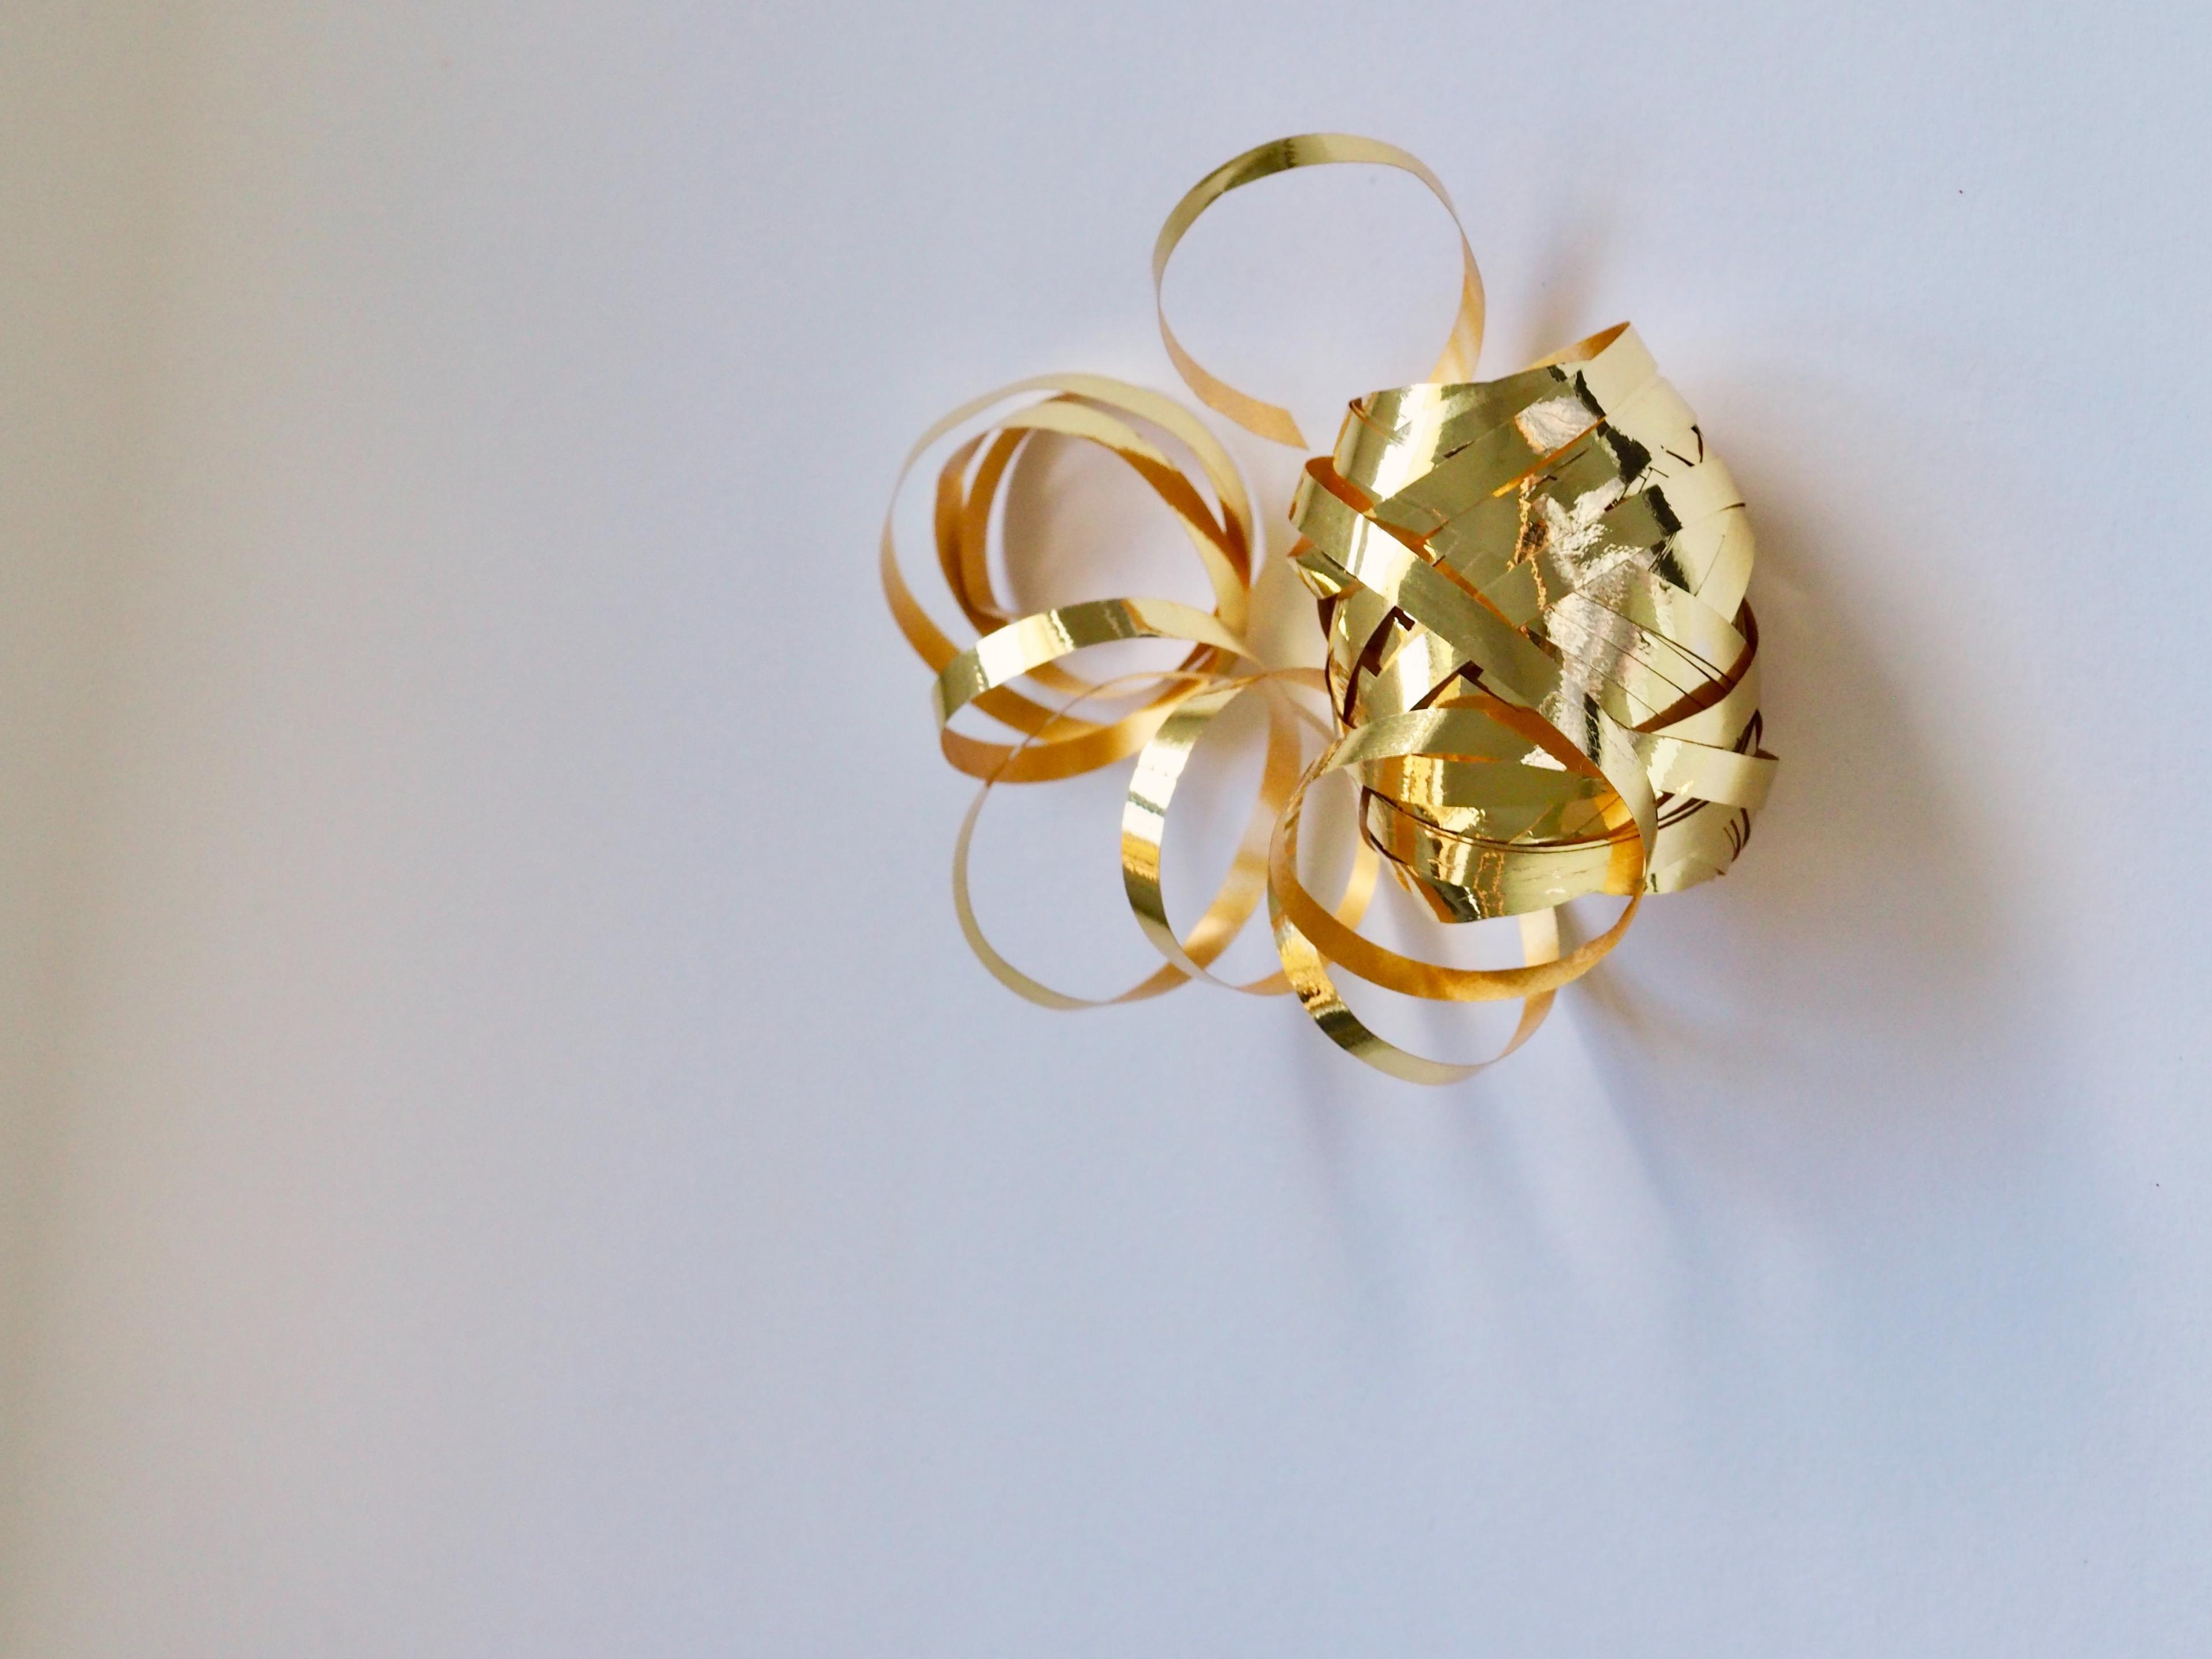 A spool of metallic gold ribbon, as would be used to tie around a holiday gift.